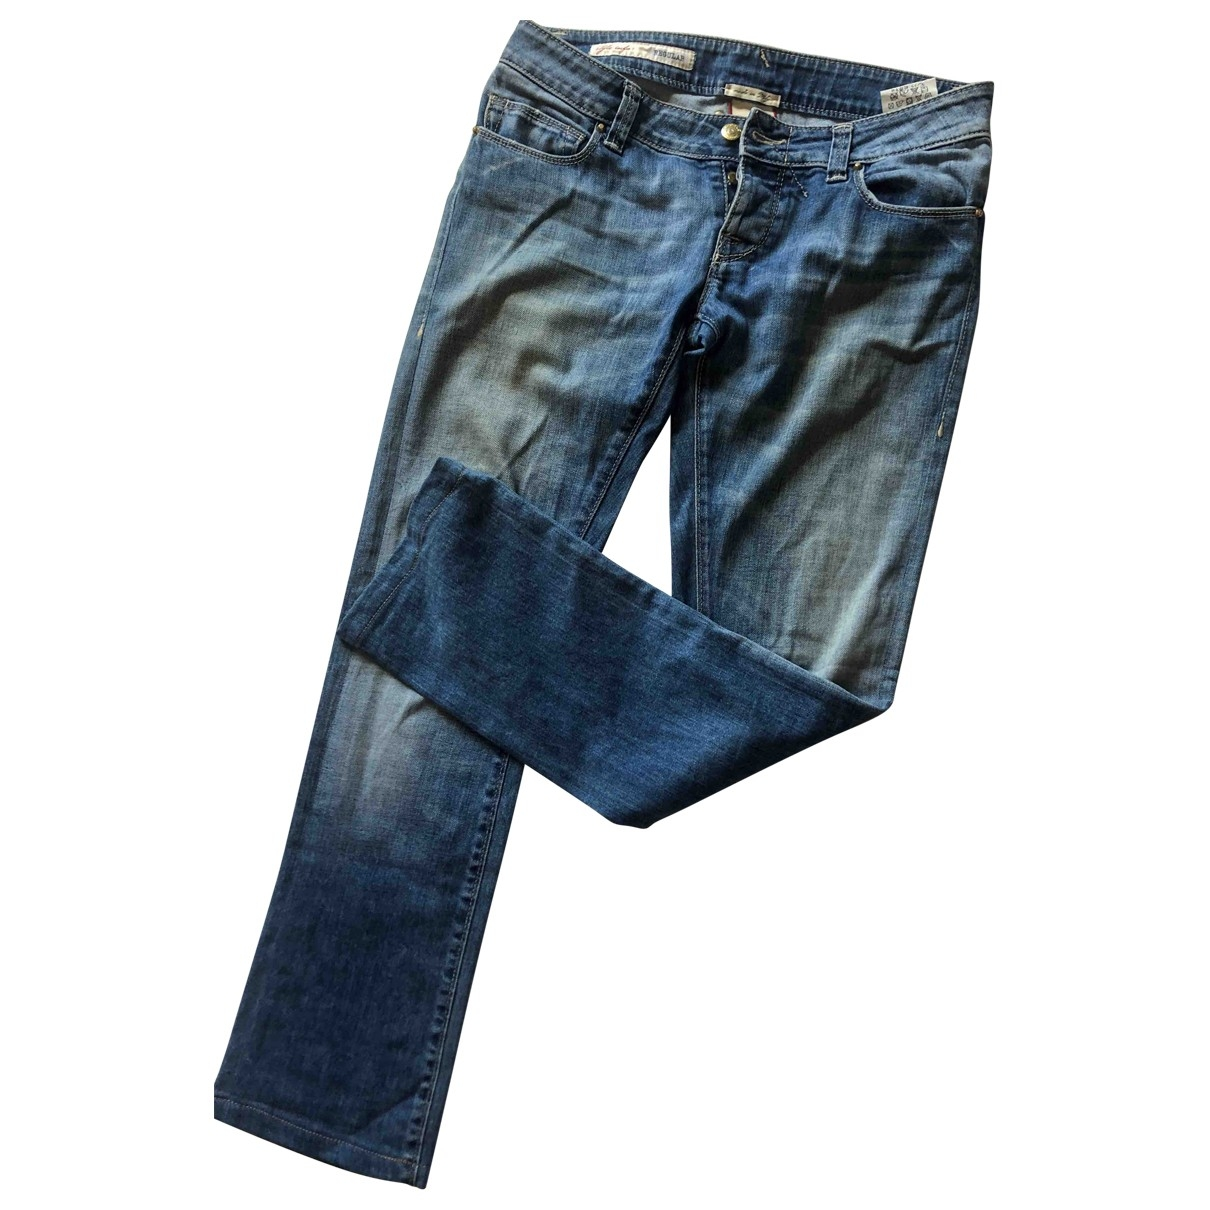 Cycle \N Blue Denim - Jeans Jeans for Women 25 US